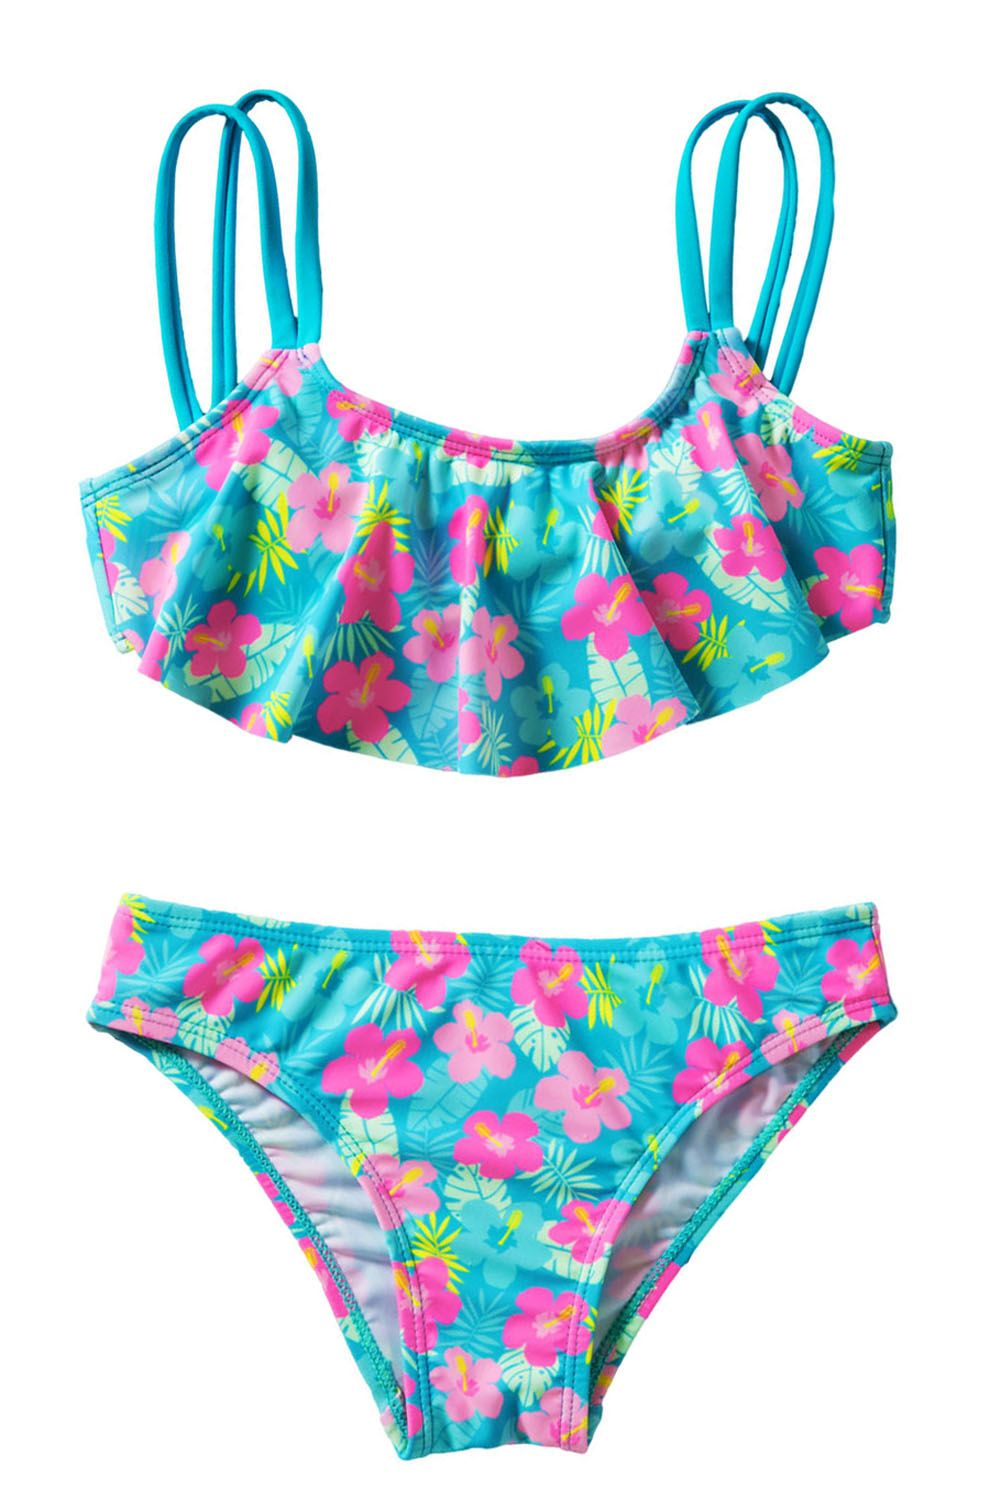 d178a7a5cd8 Girls' Ruffle Flower Print Two Piece Swimsuit Set - (5Y)M in 2019 ...